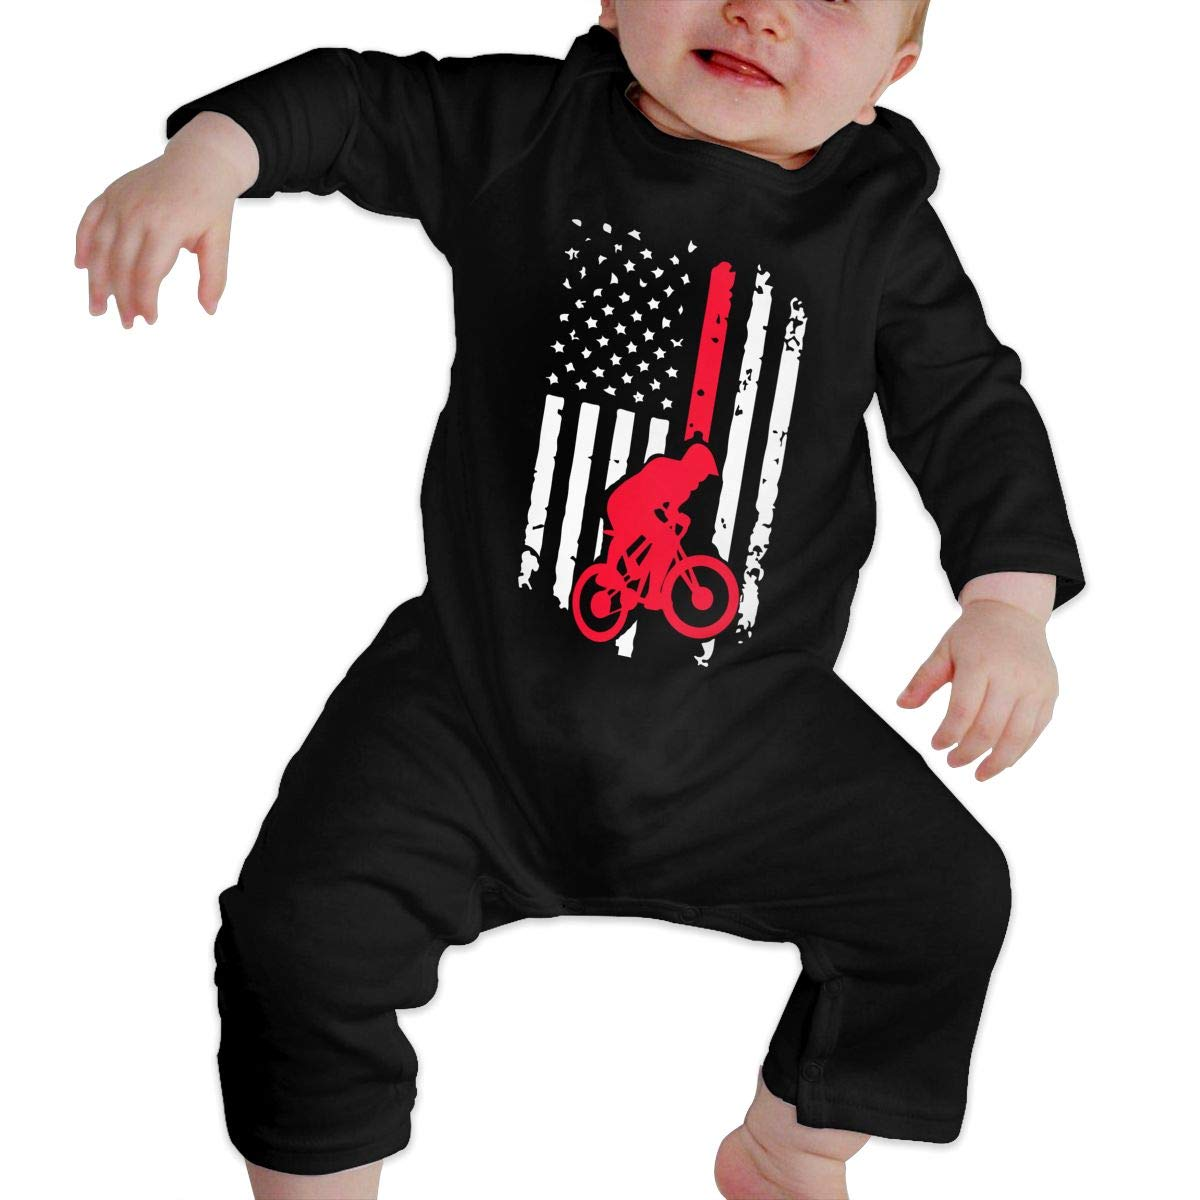 A1BY-5US Infant Babys Cotton Long Sleeve BMX Bike American Flag Climb Romper Funny Printed Romper Clothes